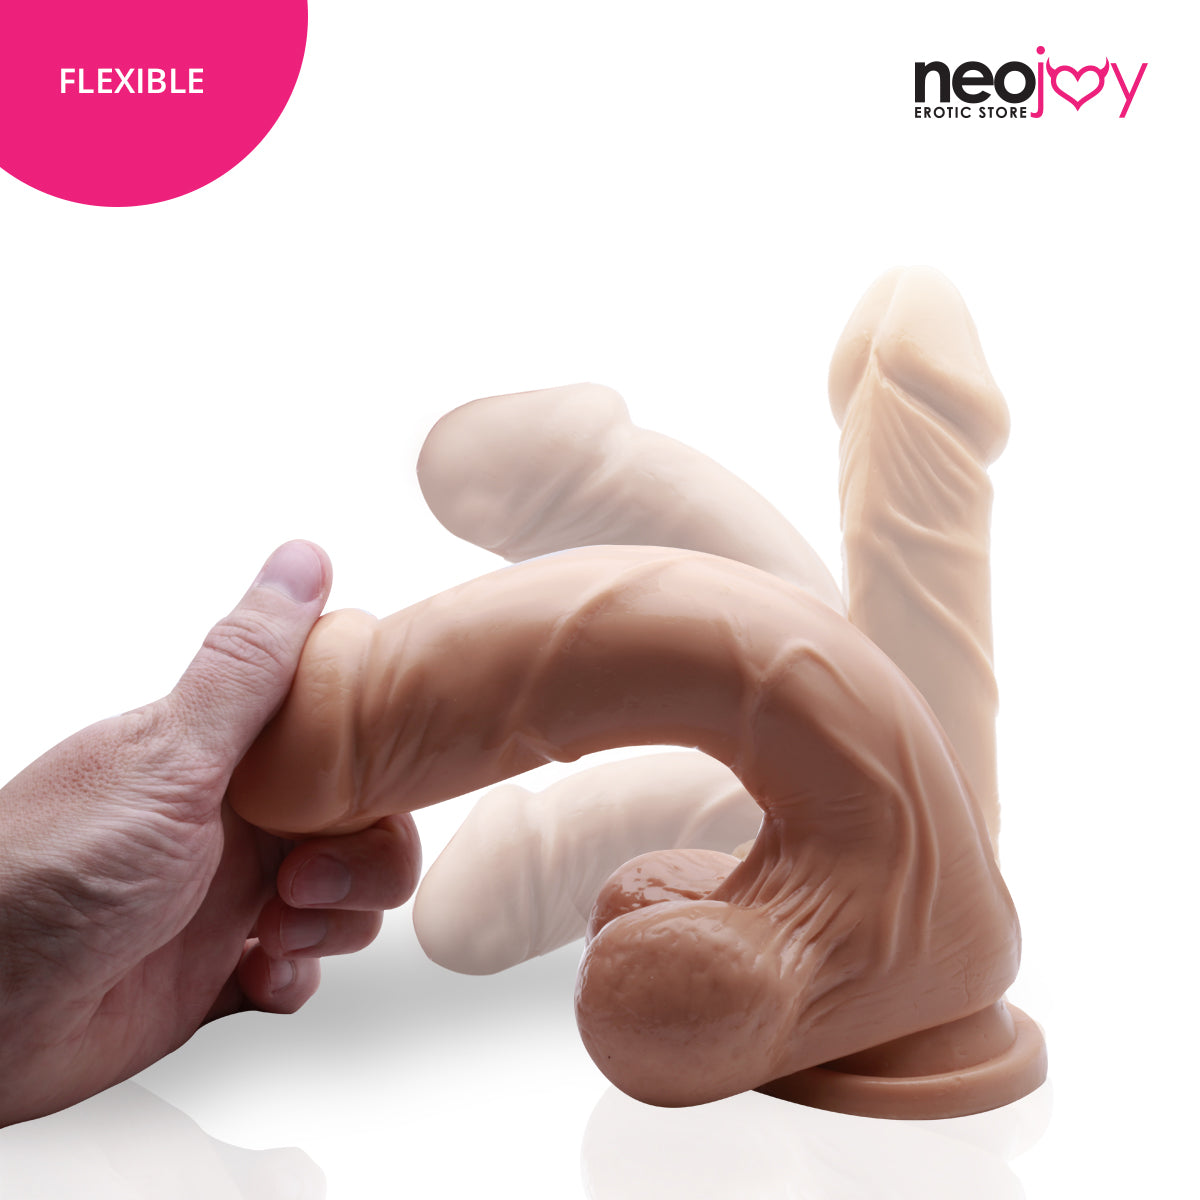 Neojoy Realistic Super Whopper Dong TPE Flesh with suction cup - Light Brown 9 inch - 23 cm 127944+154125